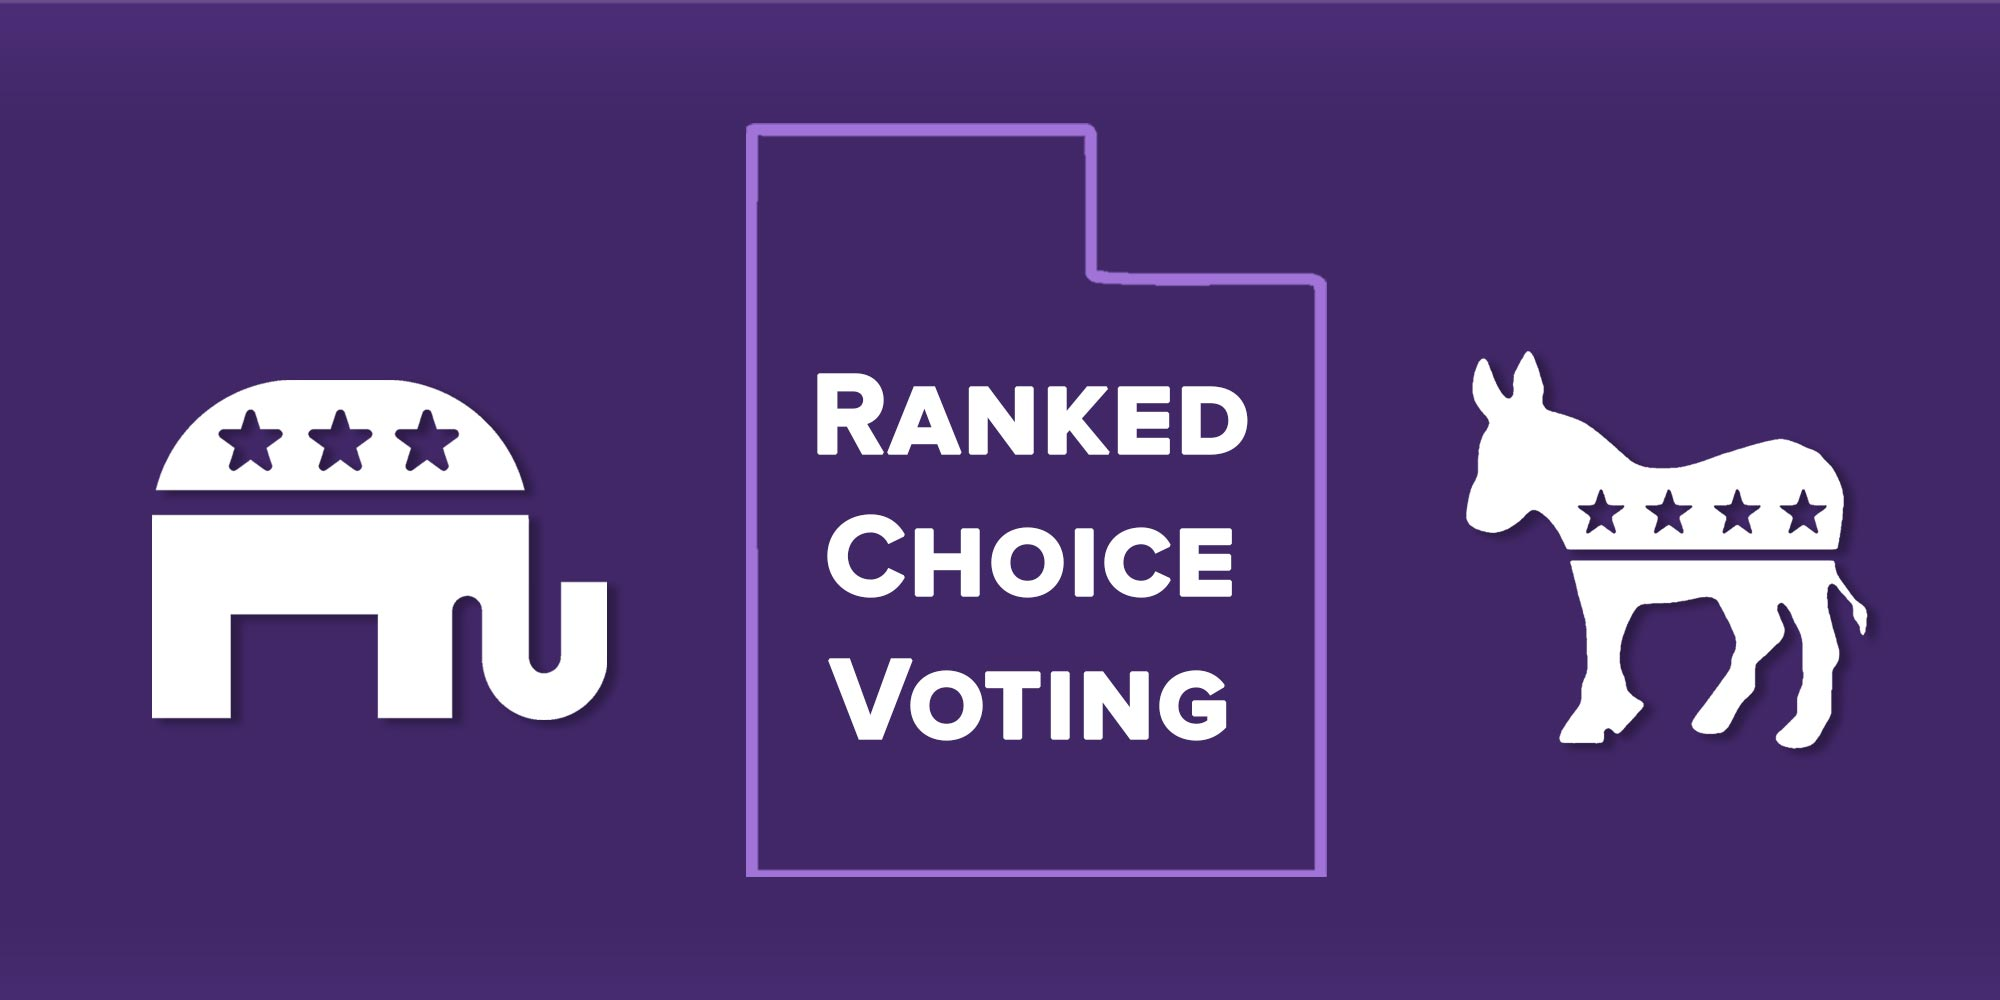 Utah Parties Switch to Virtual Ranked Choice Voting Conventions